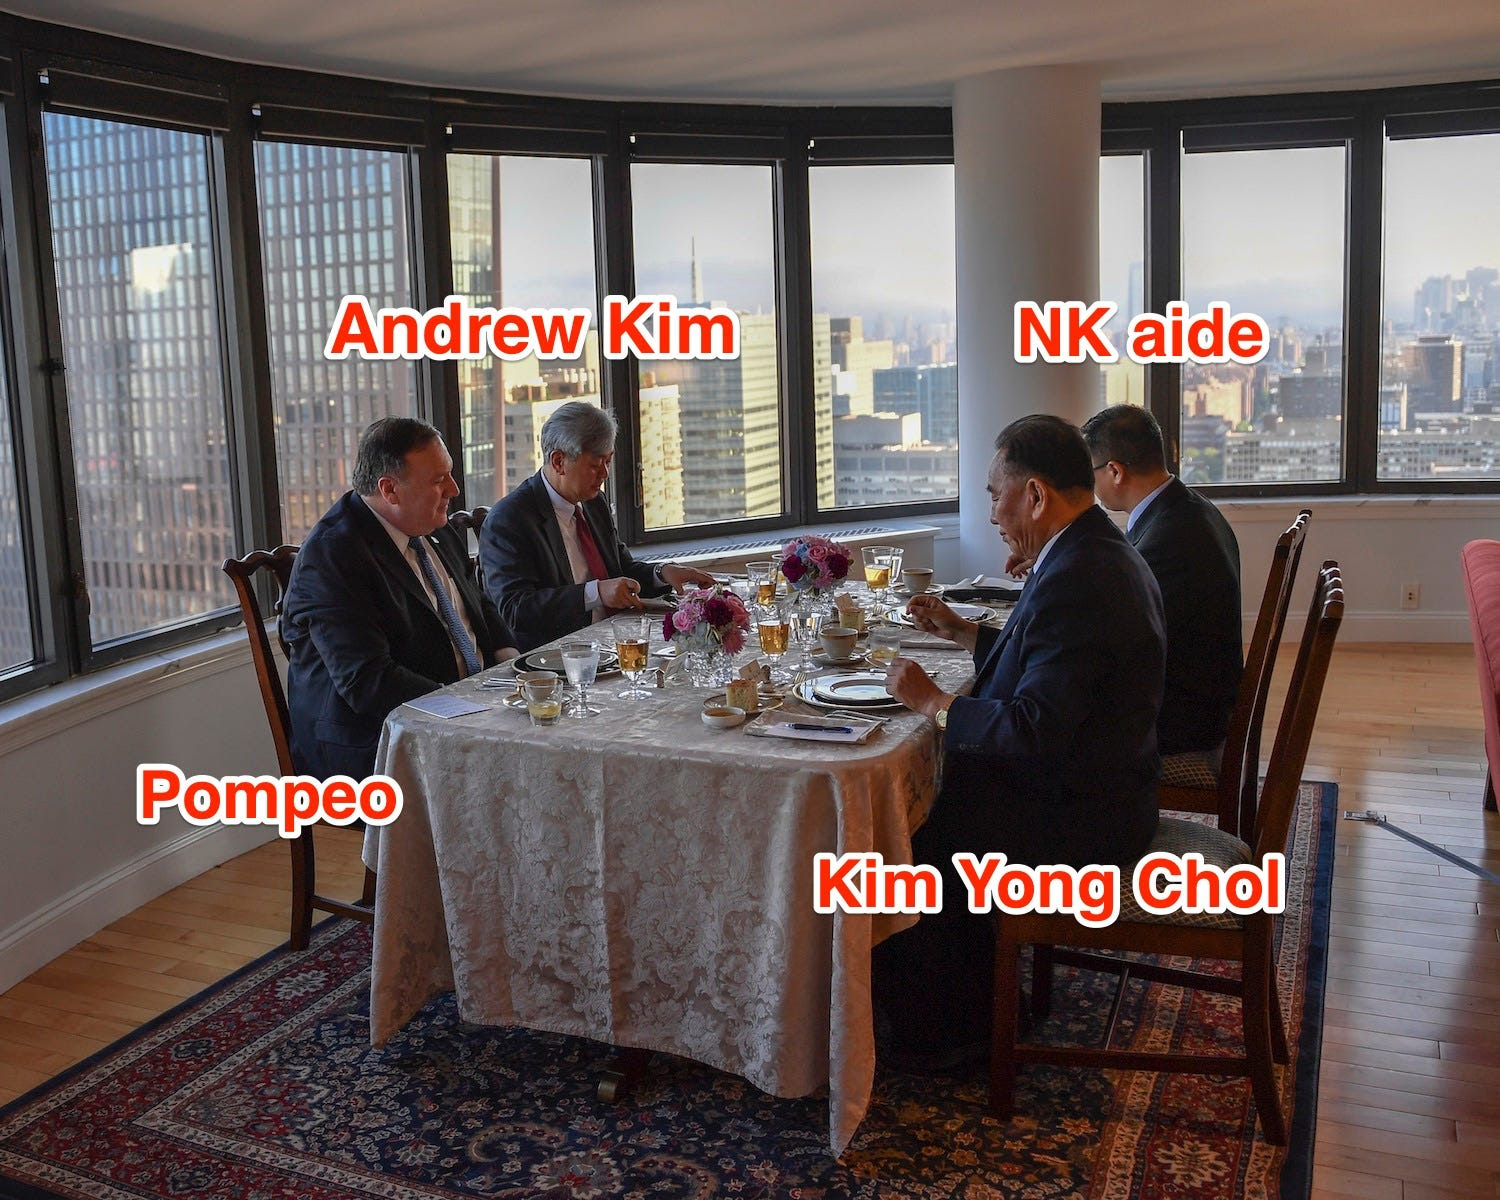 kim yong chol pompeo dinner labelled